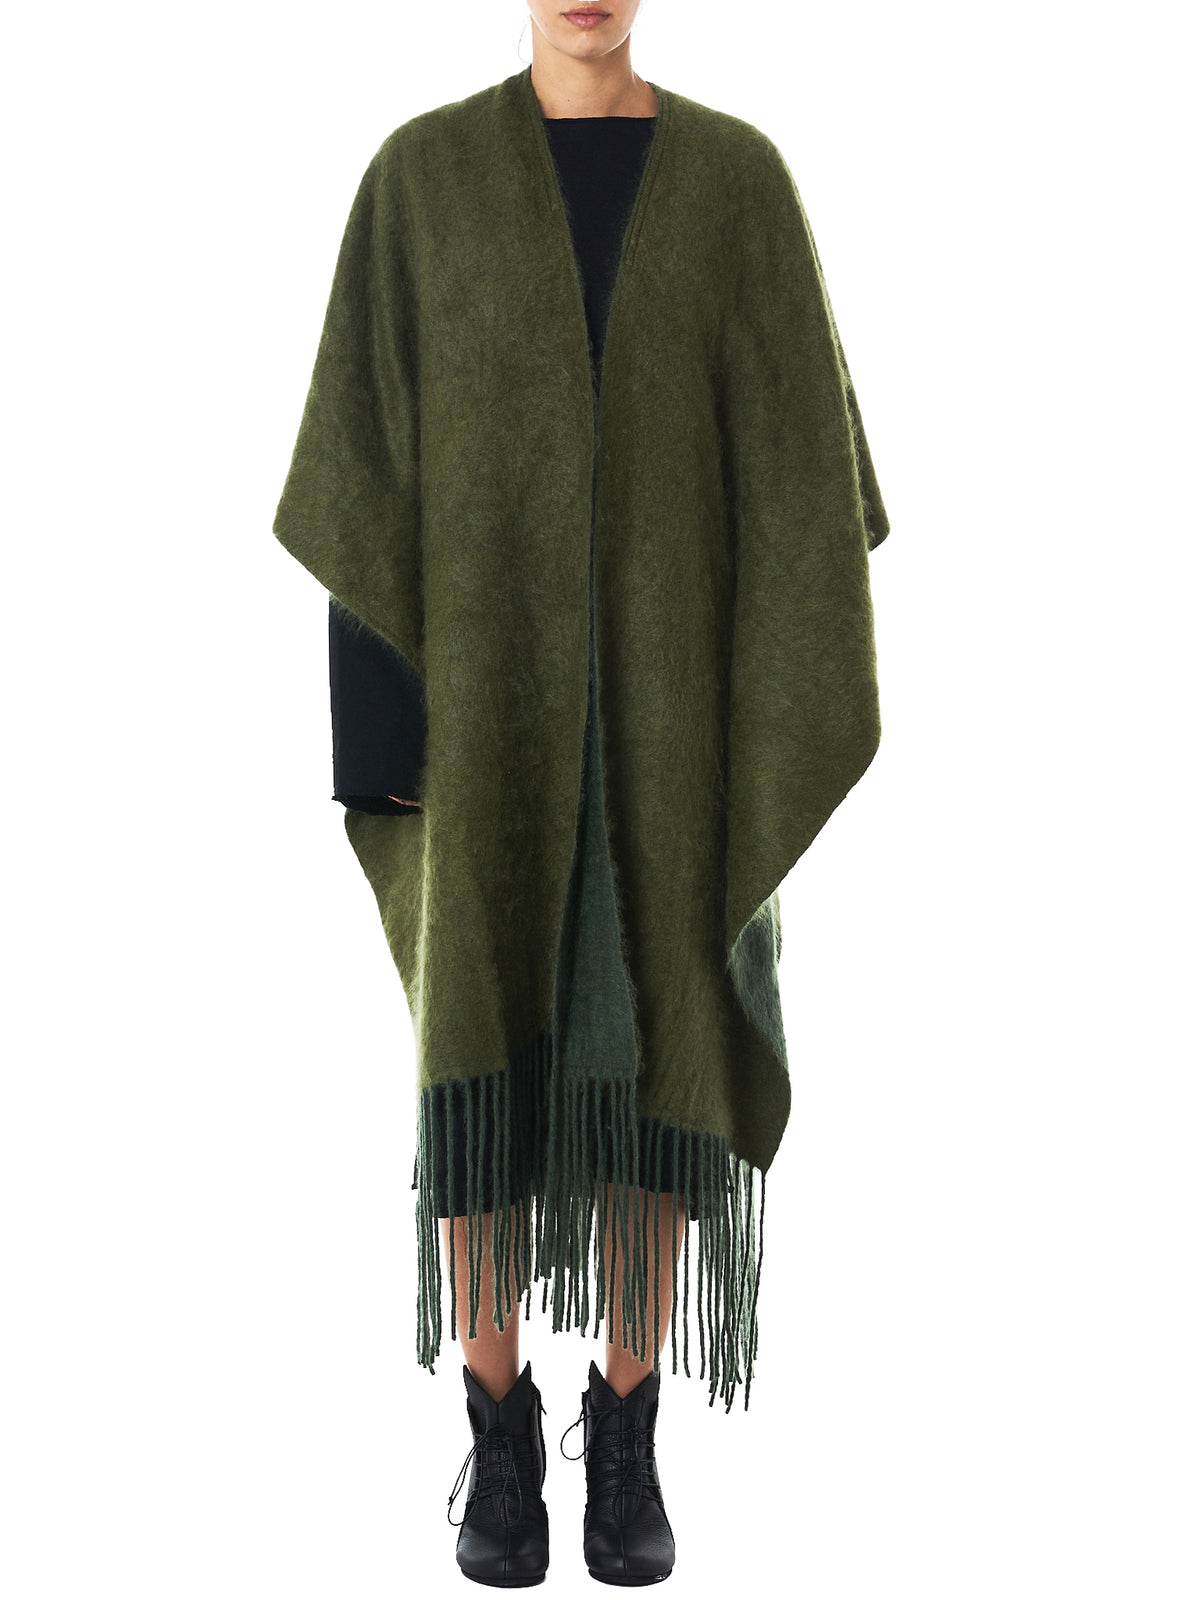 Reversible Cashmere Poncho (SOMA-FRINGED-GREEN-ARMY)